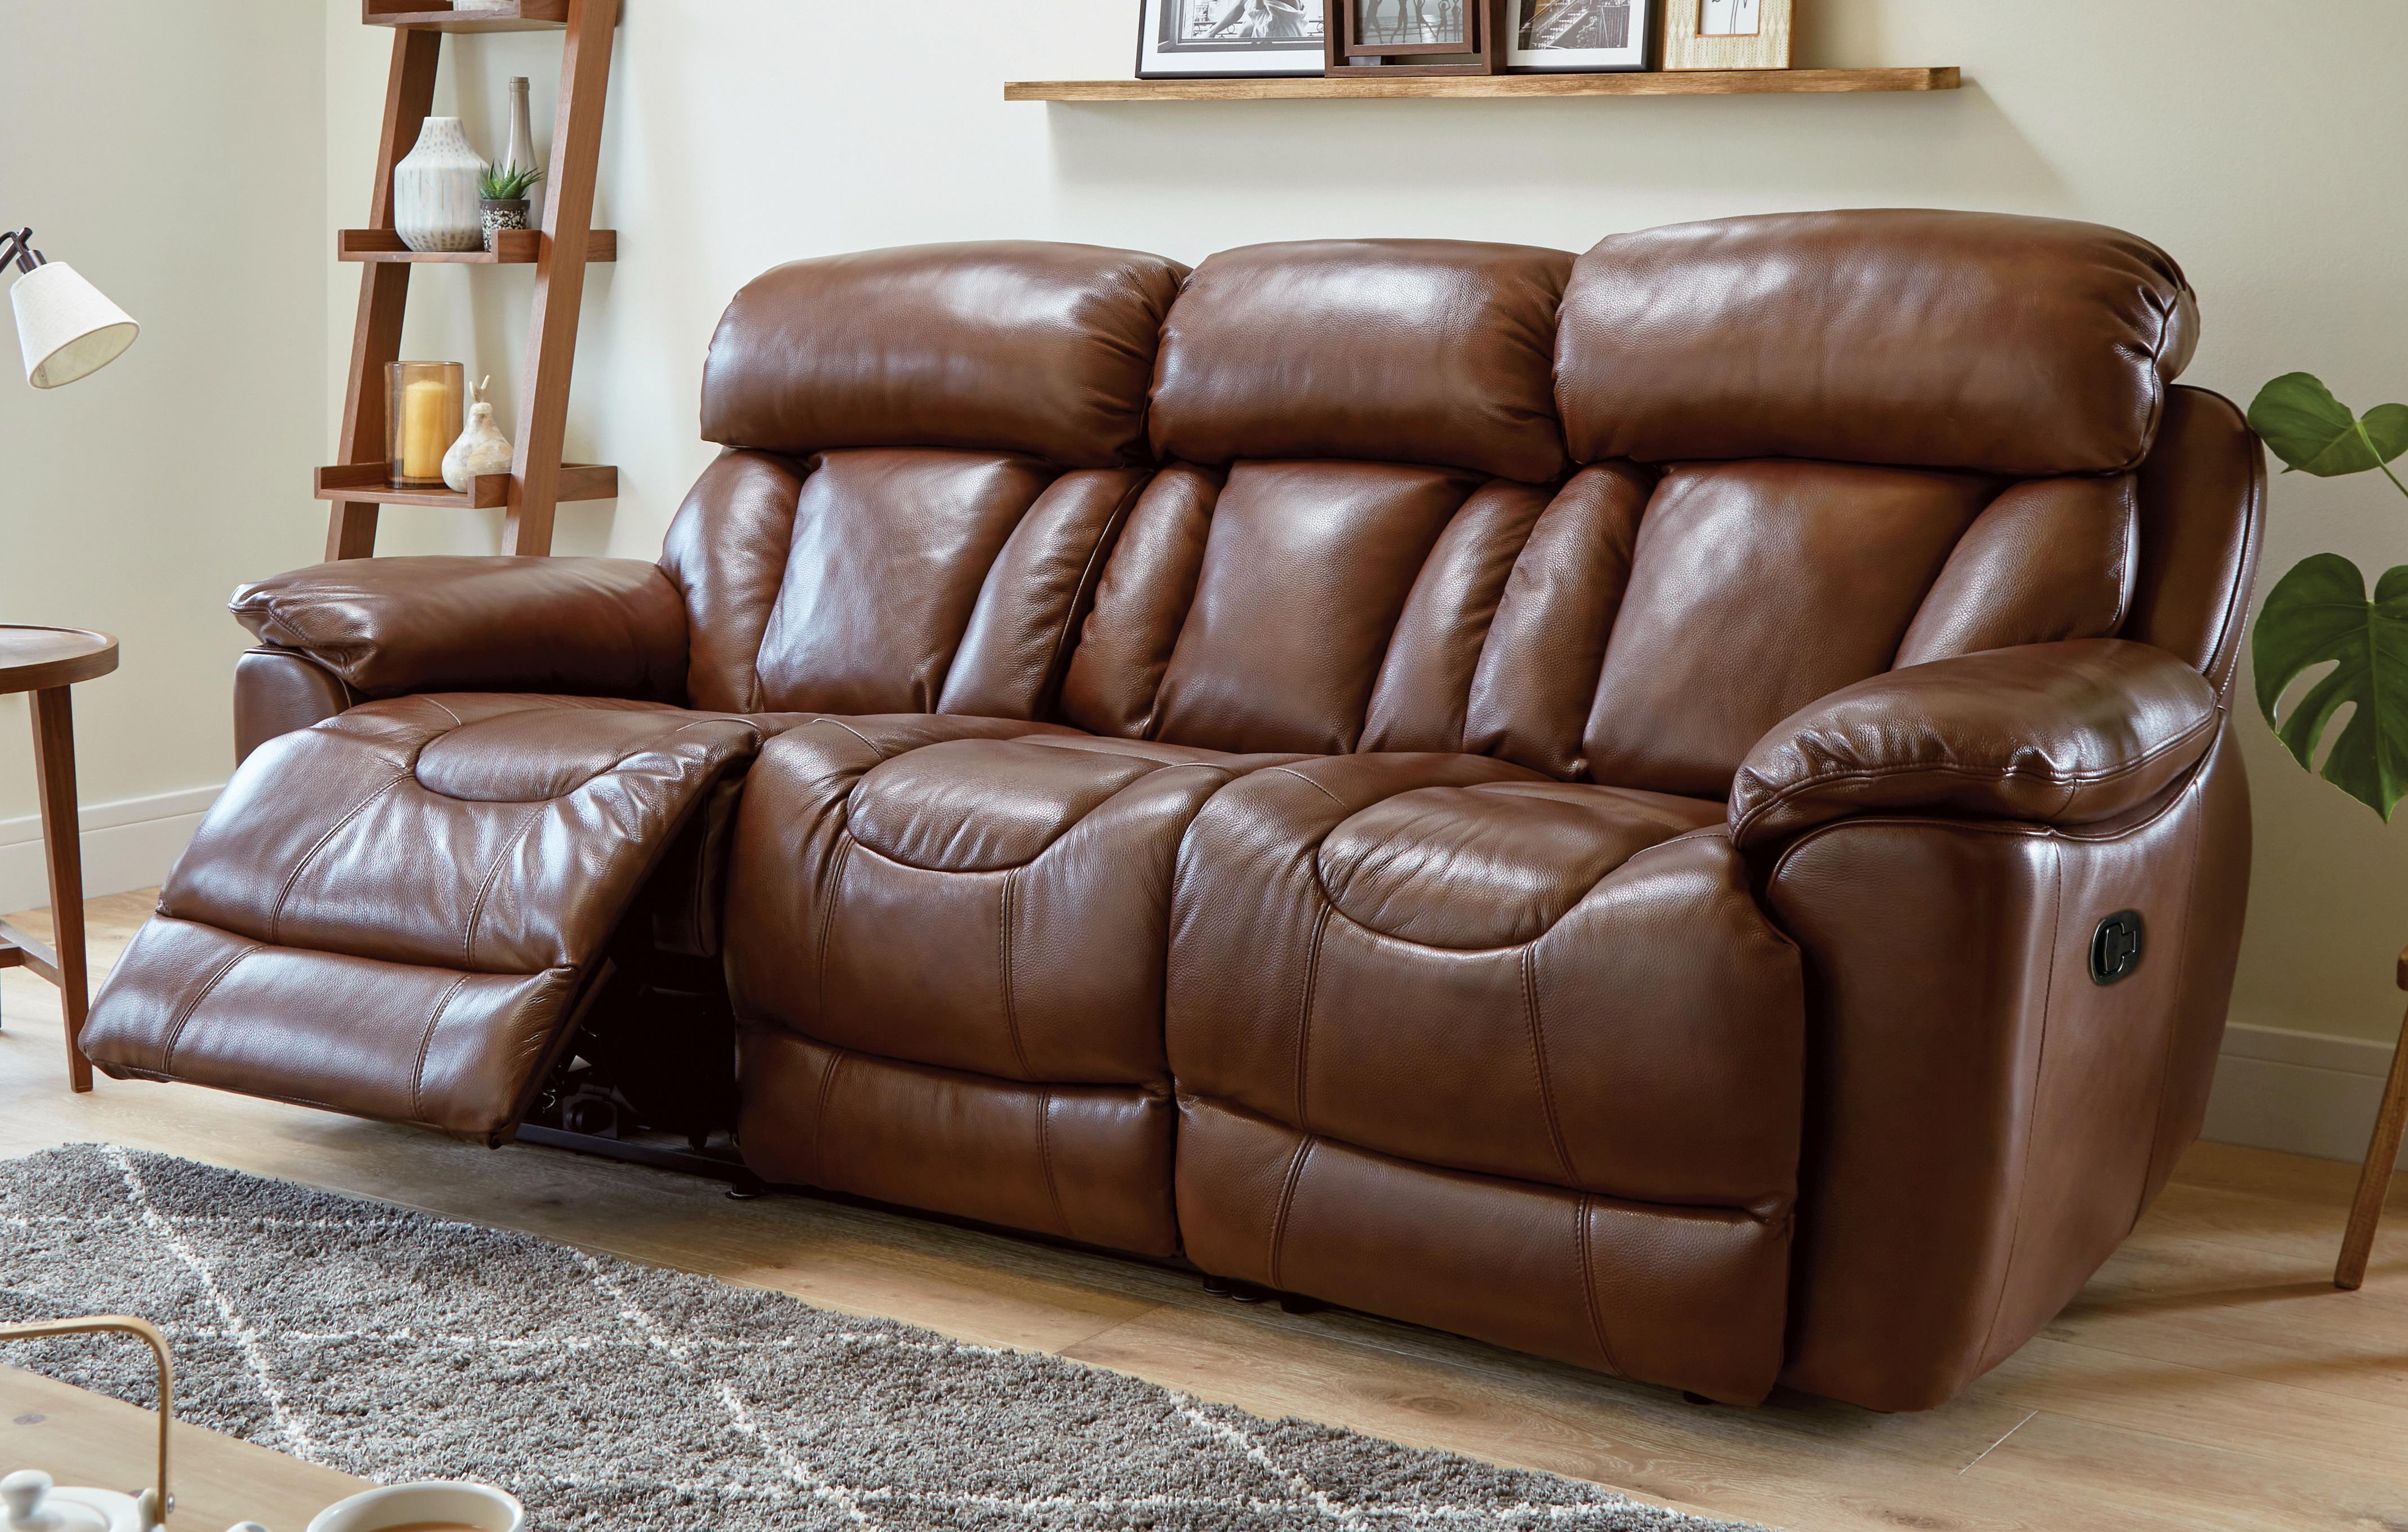 leather sofas dfs roma sofa tacchini recliner in a range of styles winter sale supreme 3 seater manual panama